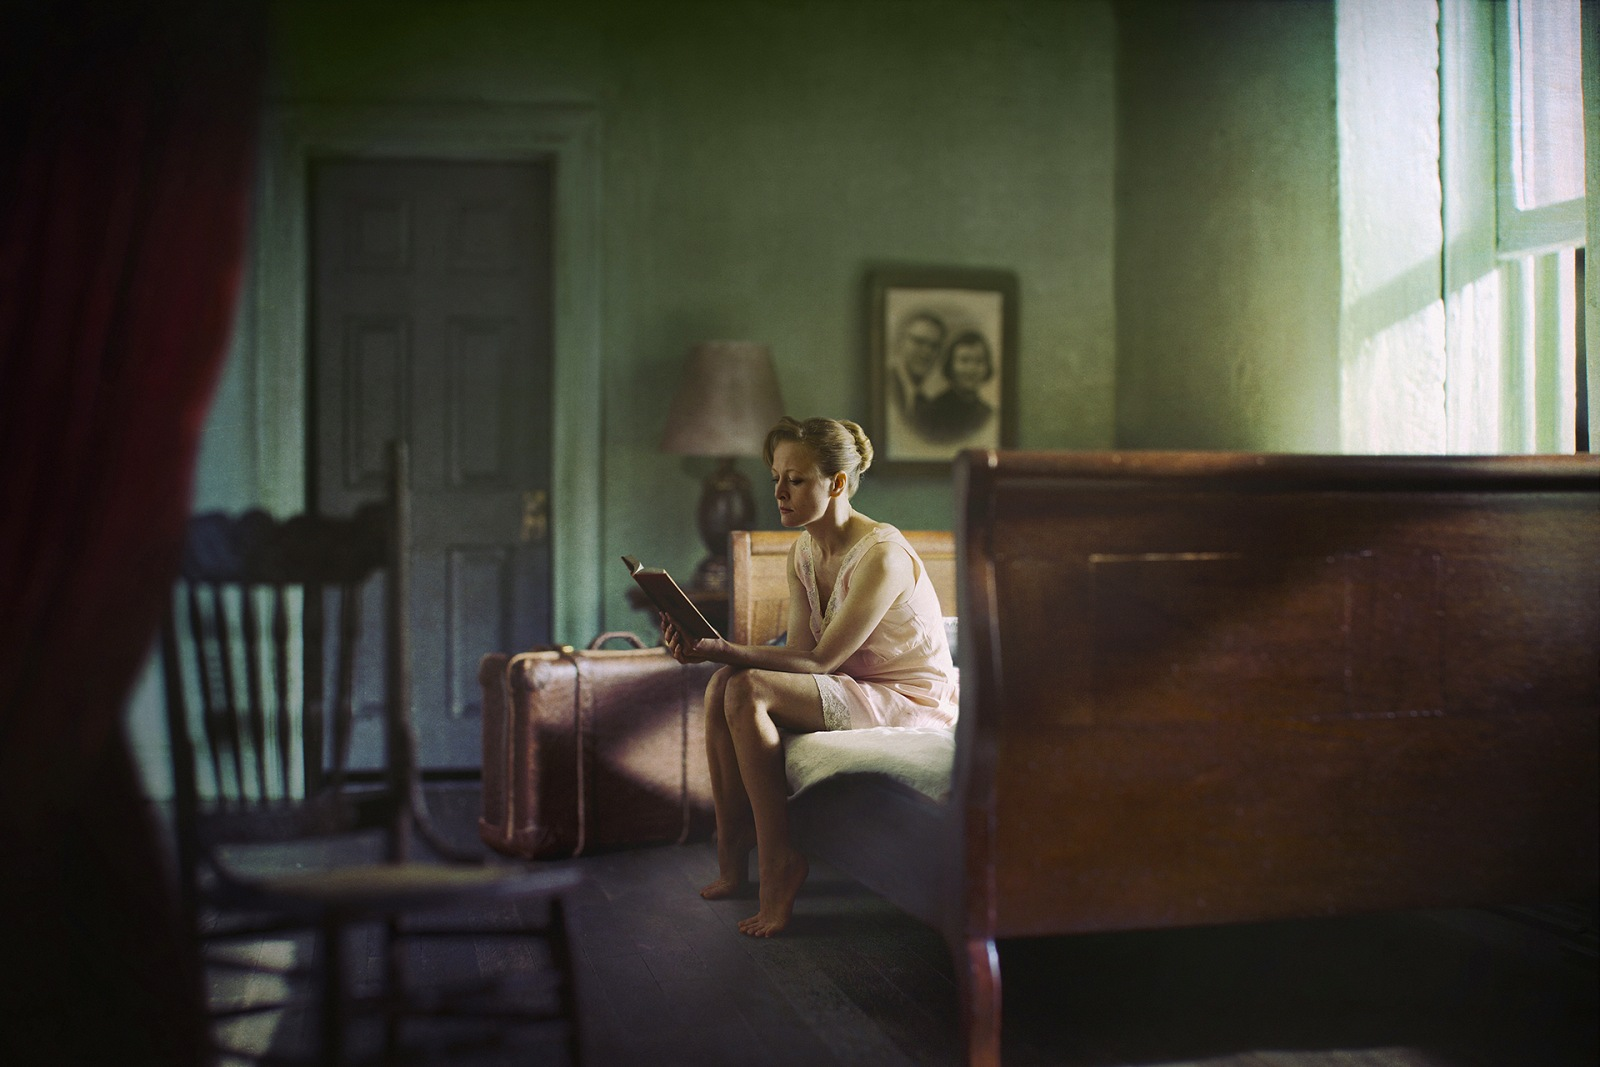 Woman Reading, 2013. © Richard Tuschman.